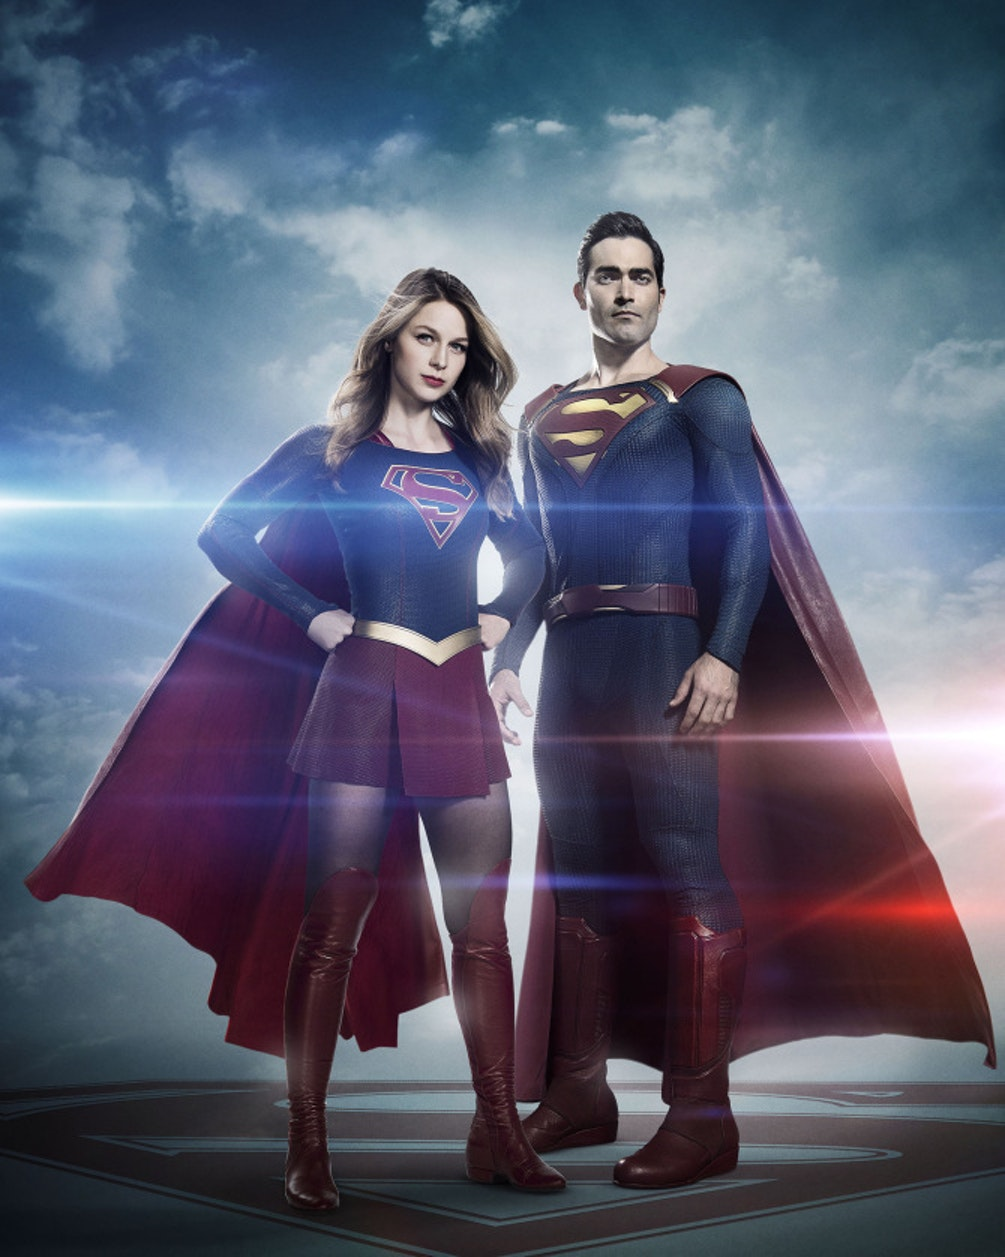 Melissa Benoist as Supergirl and Tyler Hoechlin as Superman in 'Supergirl' Season 2.